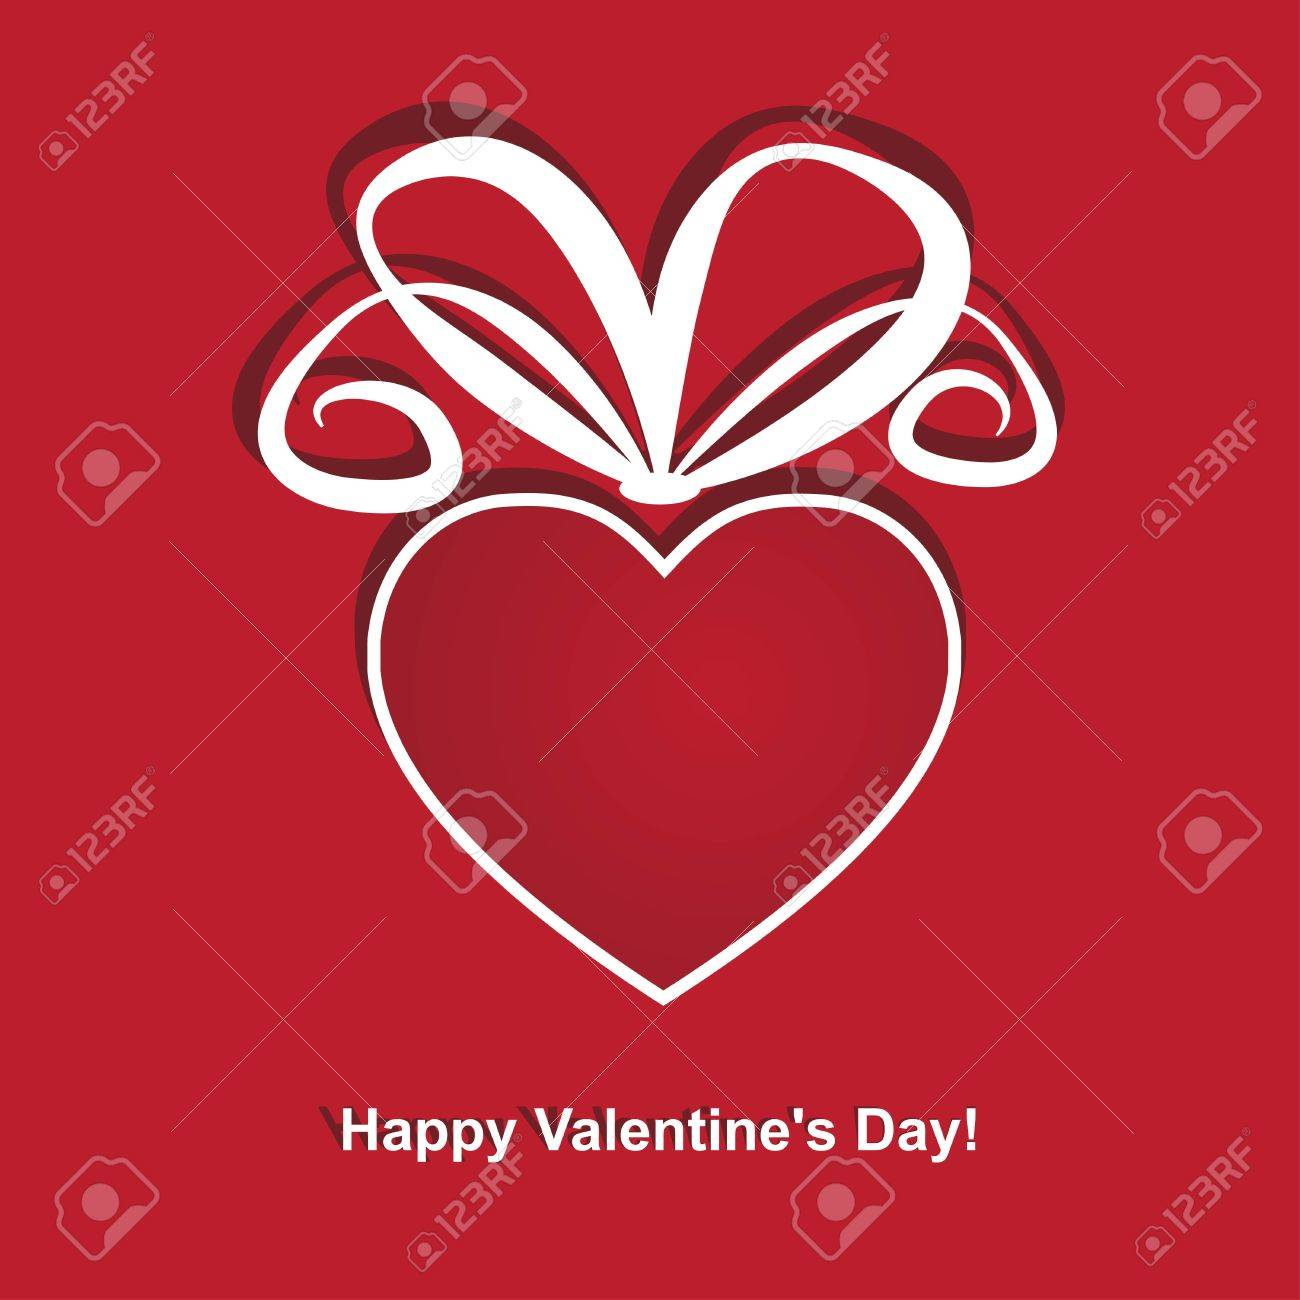 Greeting cards for Valentine's Day. A heart-shaped red gift box. Stock Vector - 17588929